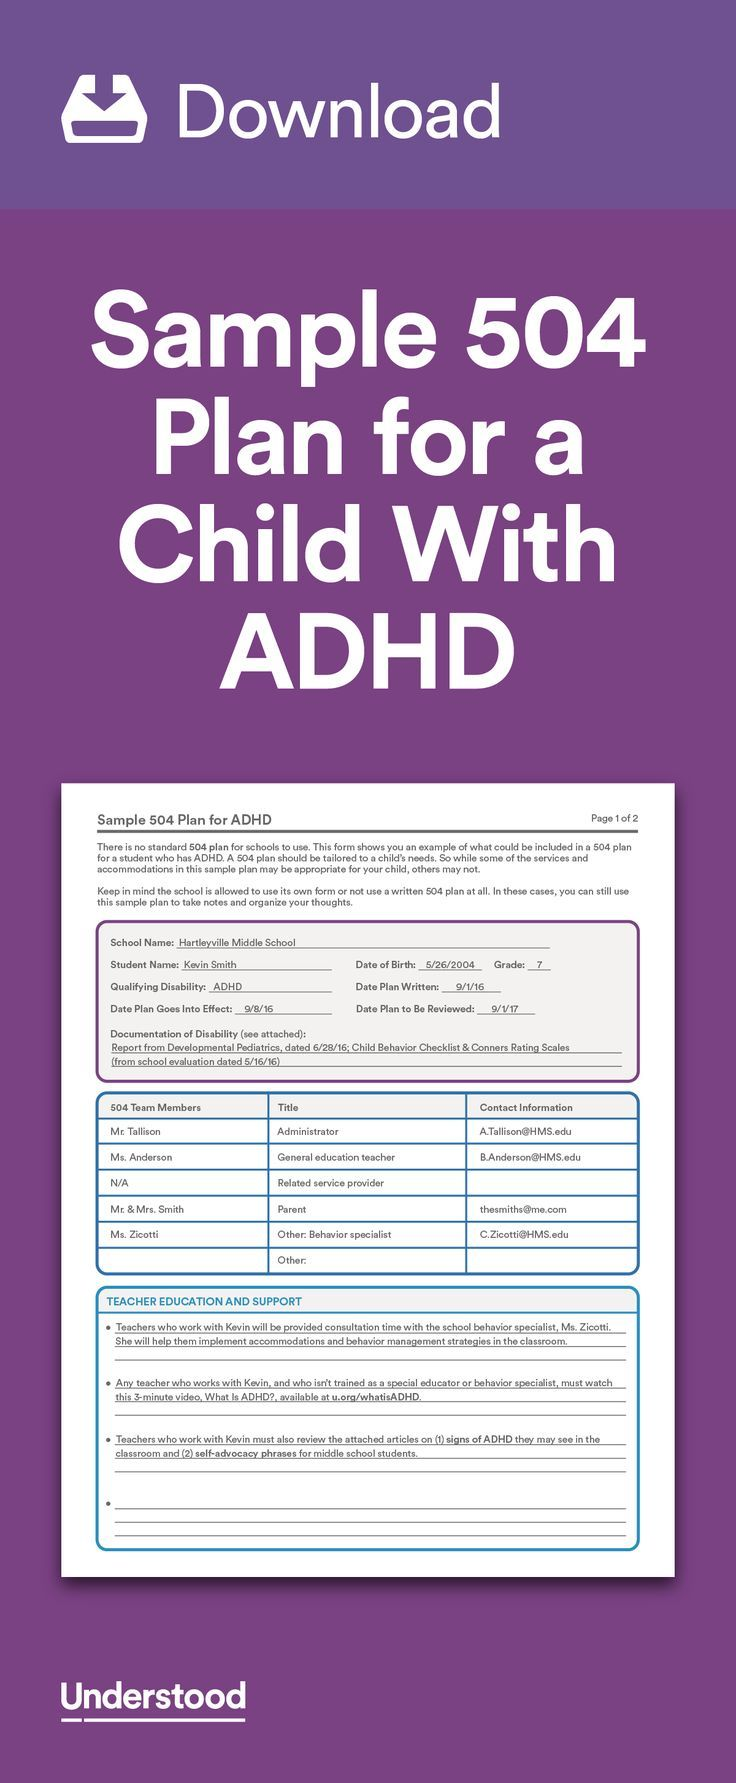 Download sample 504 plan for a child with adhd 504 plan adhd download sample 504 plan for a child with adhd pronofoot35fo Gallery